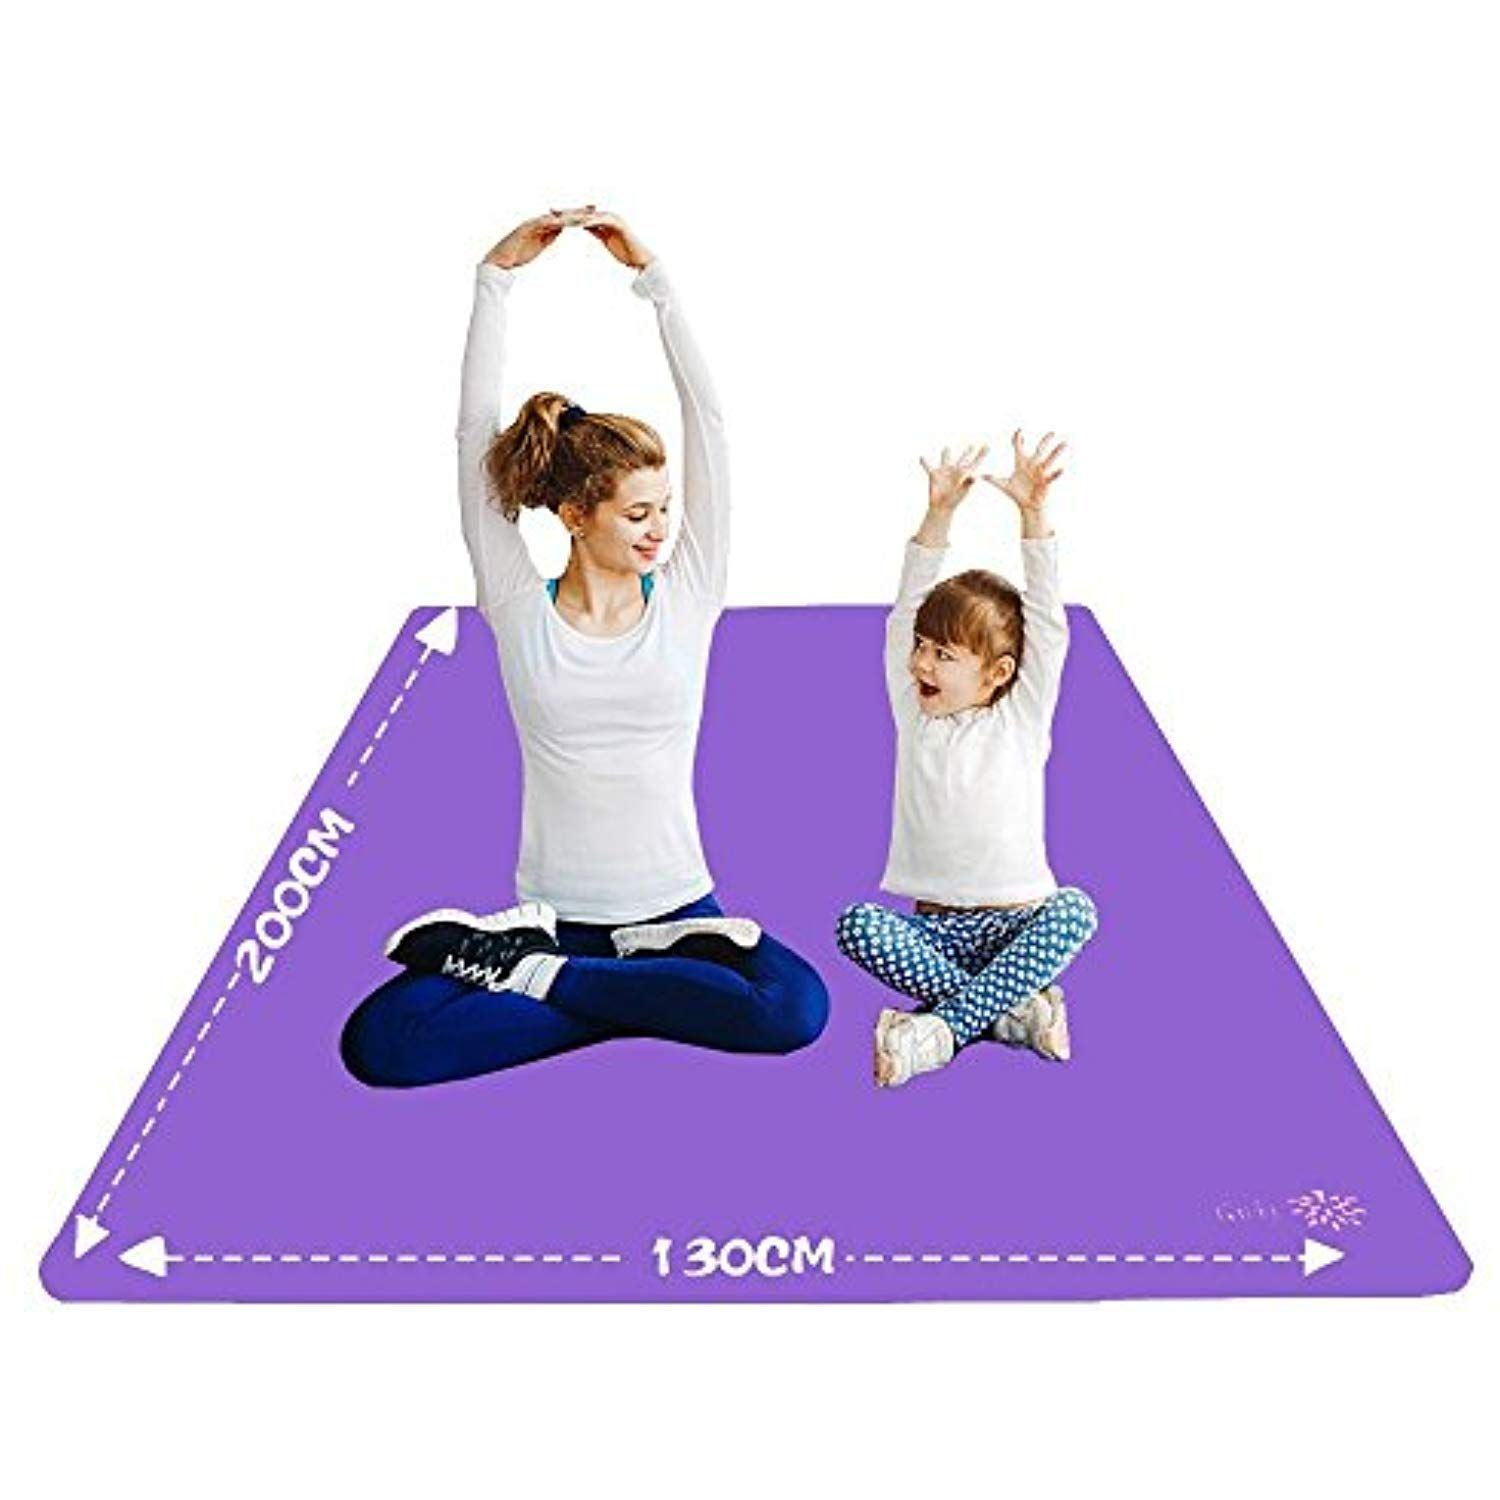 Yuren Oversized Yoga Mat 130 Cm Wide Nbr Made Thickness 10 Mm 200 Cm 130 Cm Parent Child Yoga Mat Beginner Training Ma Kids Yoga Mat Mat Exercises Yoga For Two